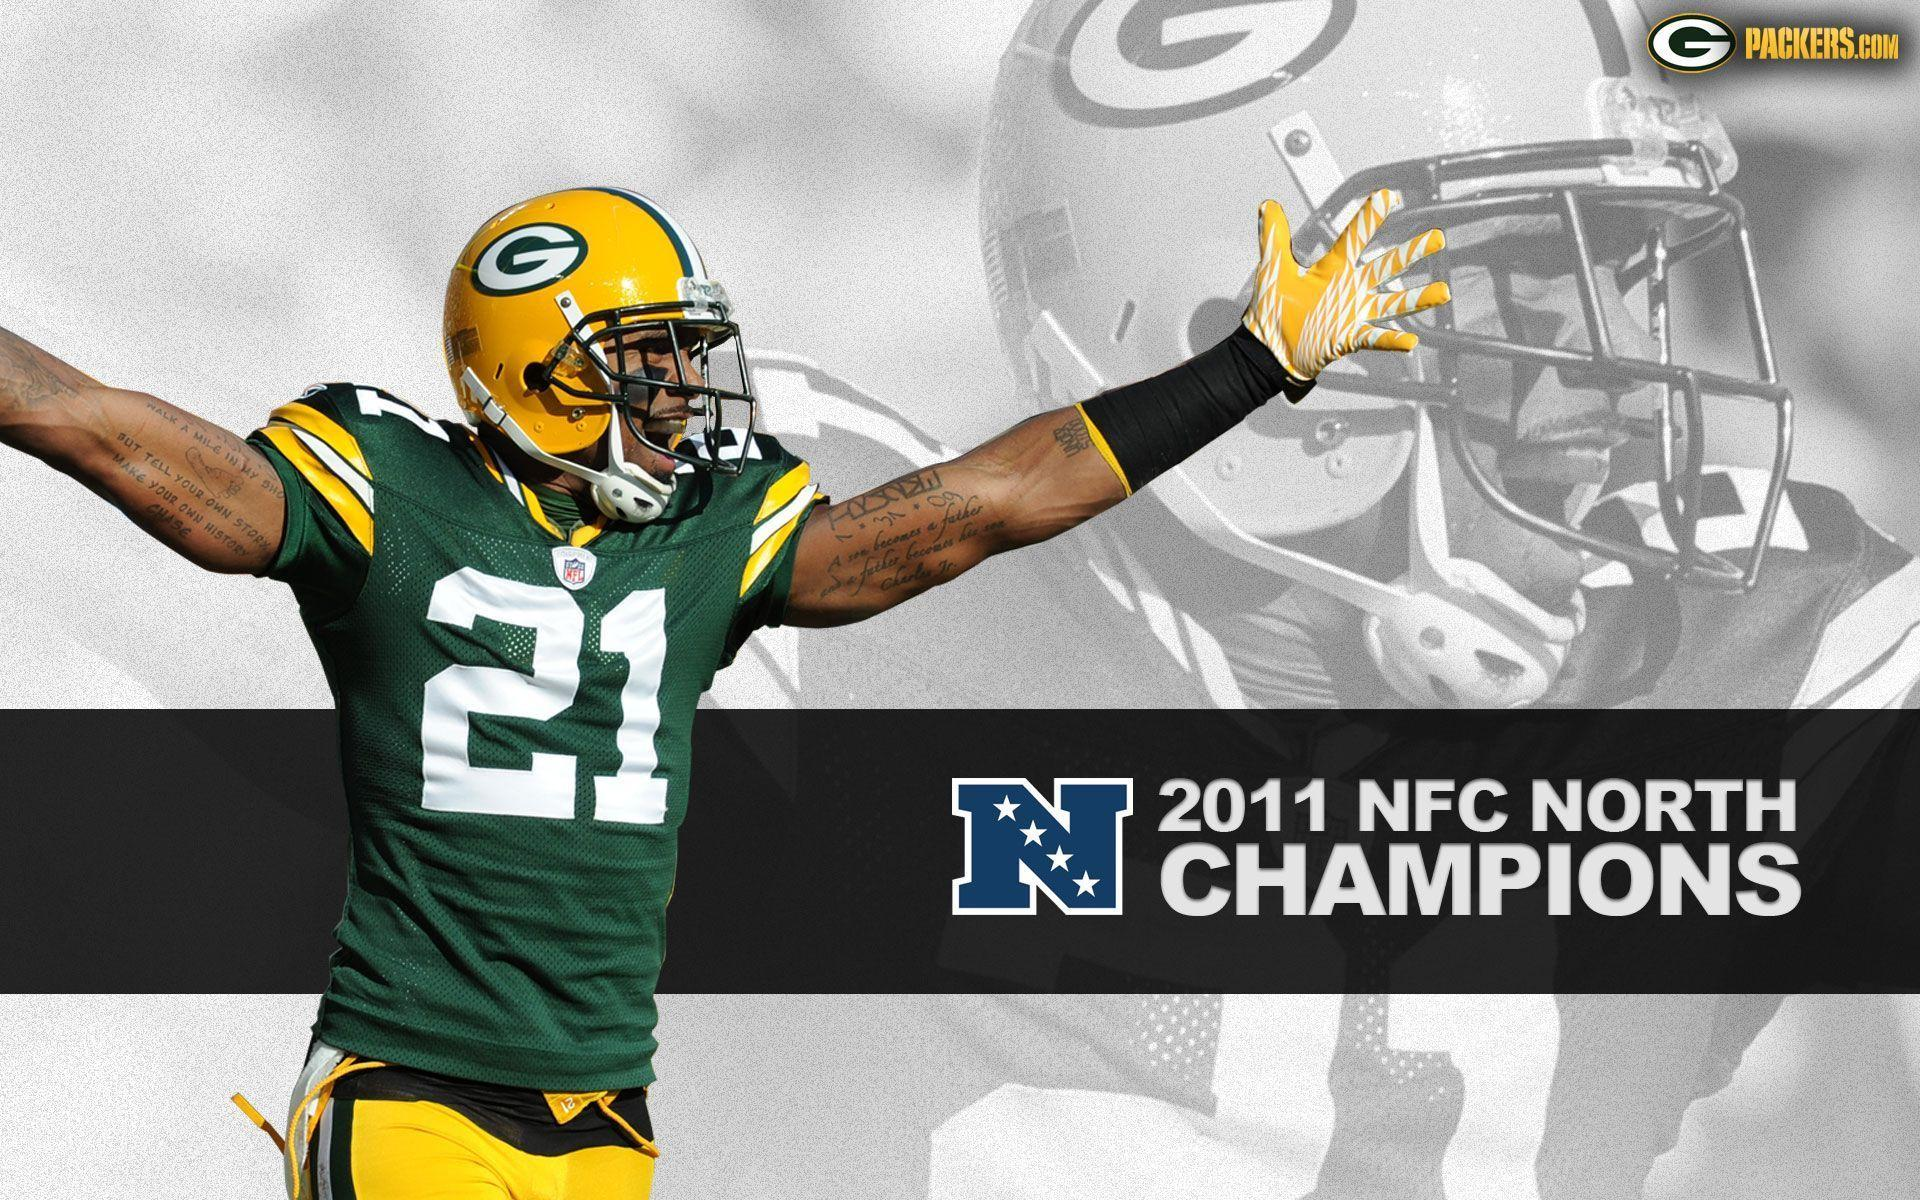 Charles woodson wallpapers wallpaper cave - Charles woodson packers wallpaper ...